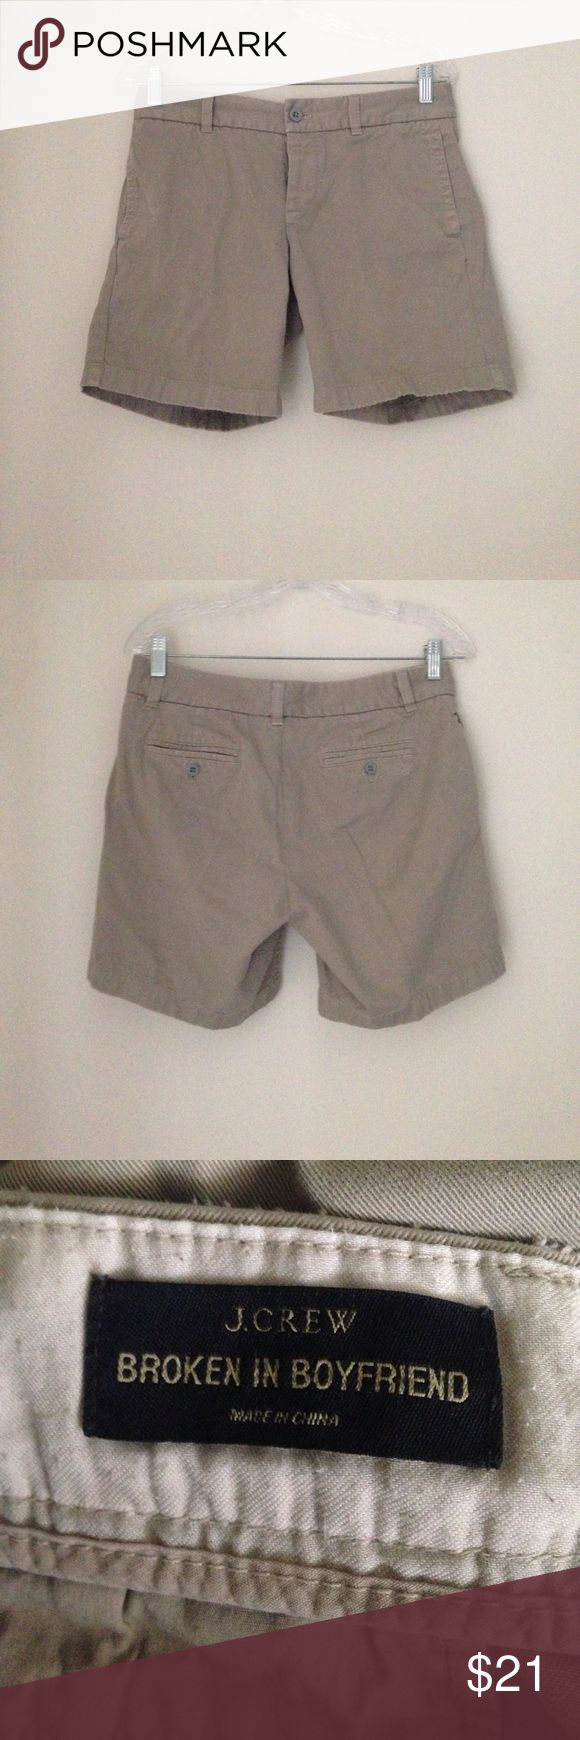 """J Crew broken in boyfriend tan chino shorts; sz 2 Designed by J.Crew. Dark tan/tan chino shorts. 15.5"""" side to side waist; 7.5"""" inseam; 9"""" rise. 10.5 inch leg opening side to side.Two inside  concealed button closure and one outer button at waist. Side concealed pockets right and left. Back envelope button pockets. Belt loops front and back. 100% cotton and soft. Made china. Women's size 2. Good condition. J. Crew Shorts"""